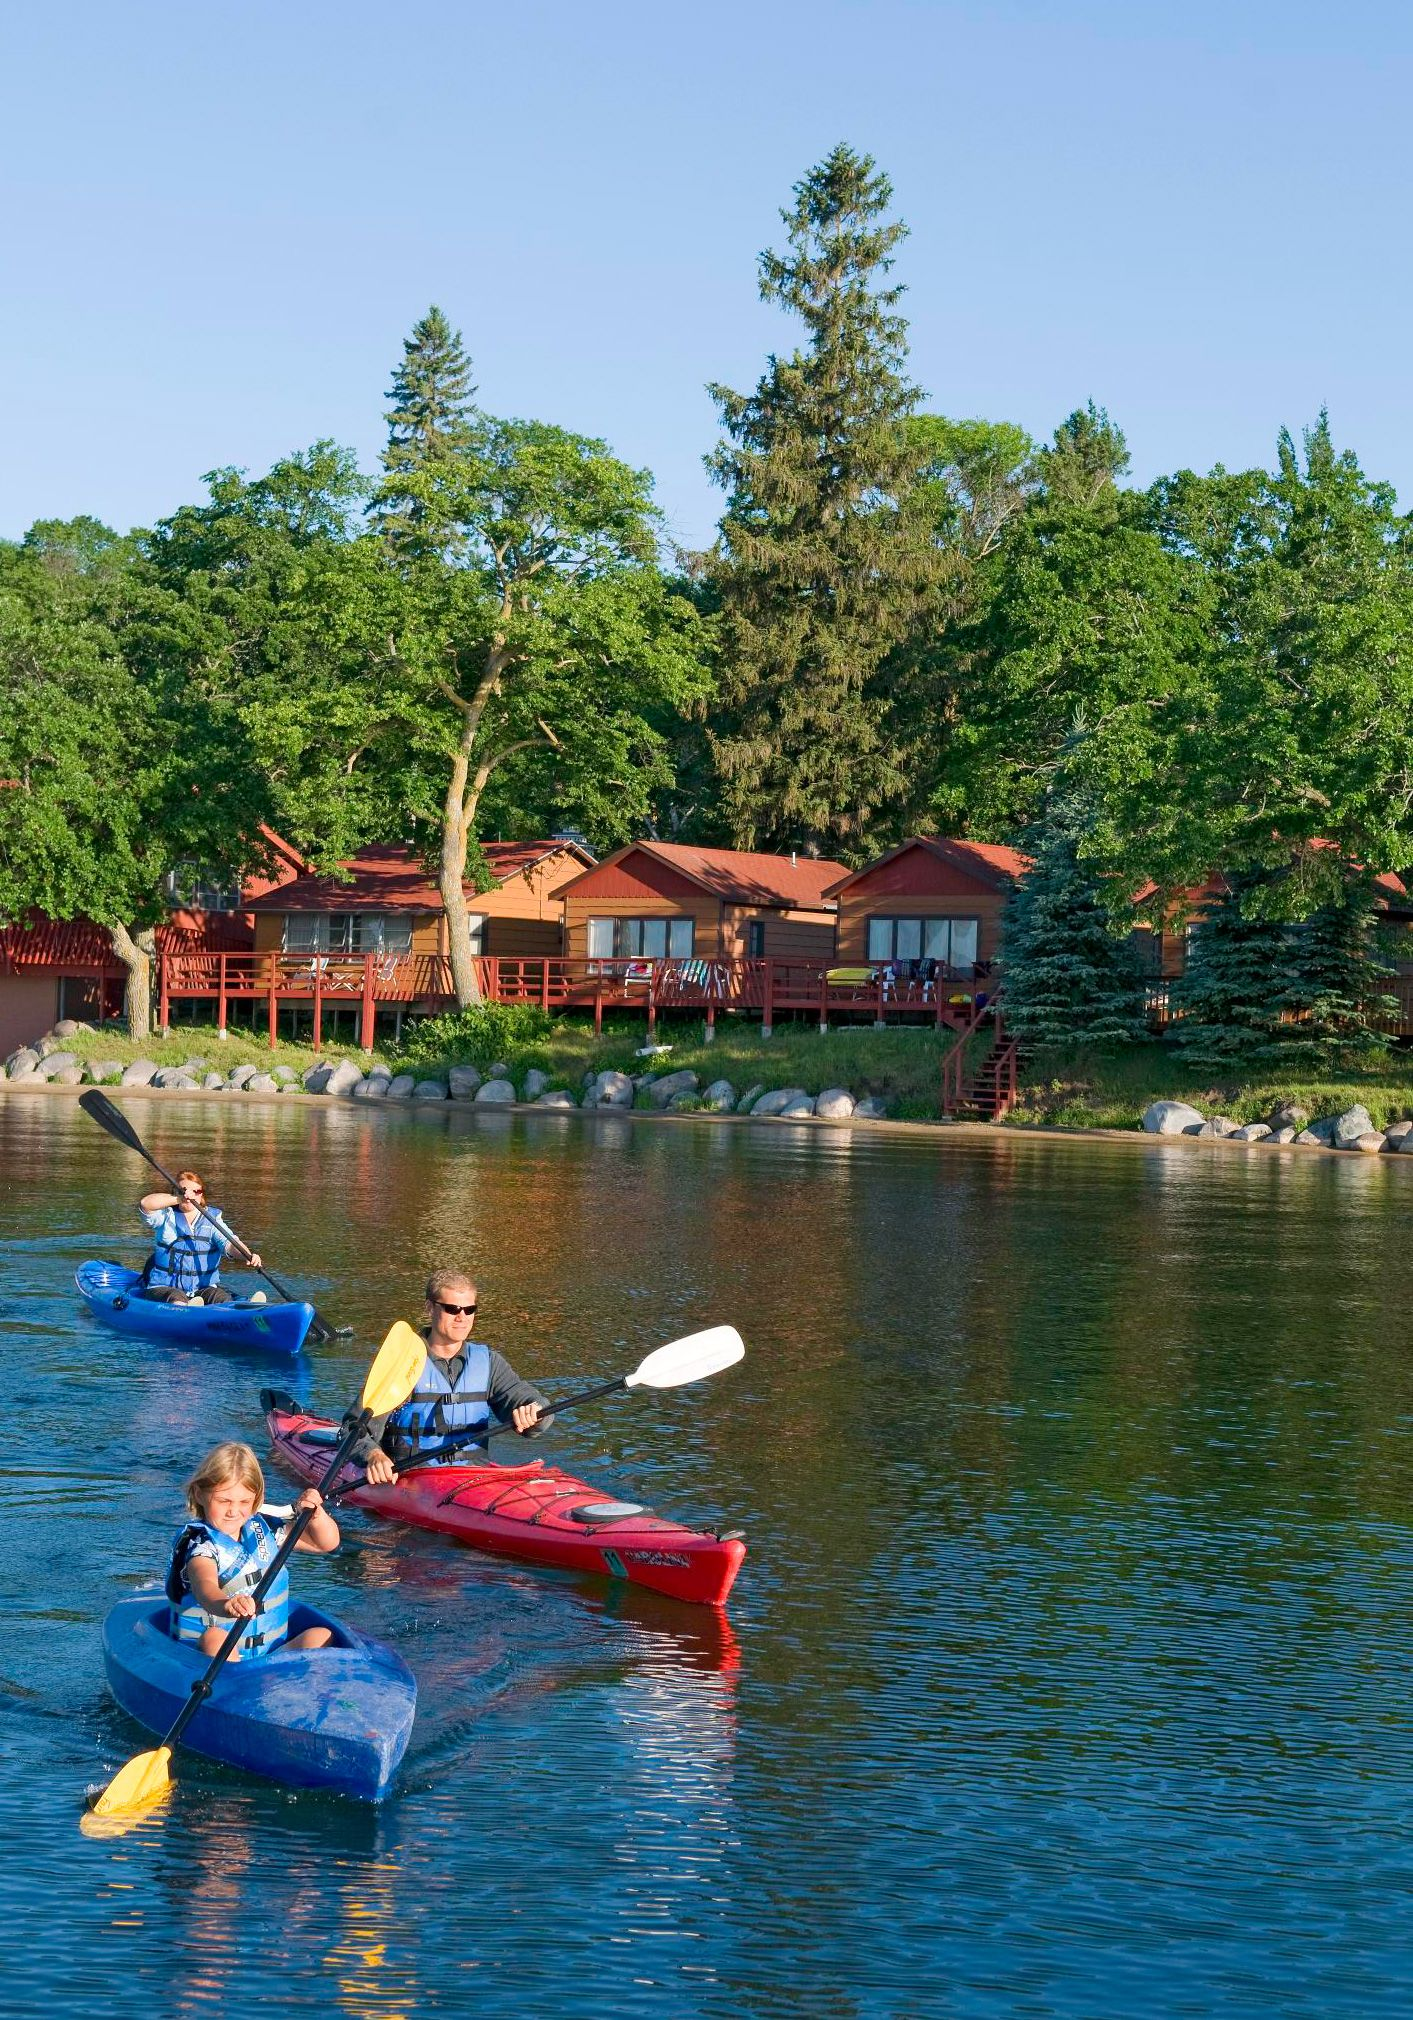 25 Coolest Midwest Lake Vacation Spots (With images